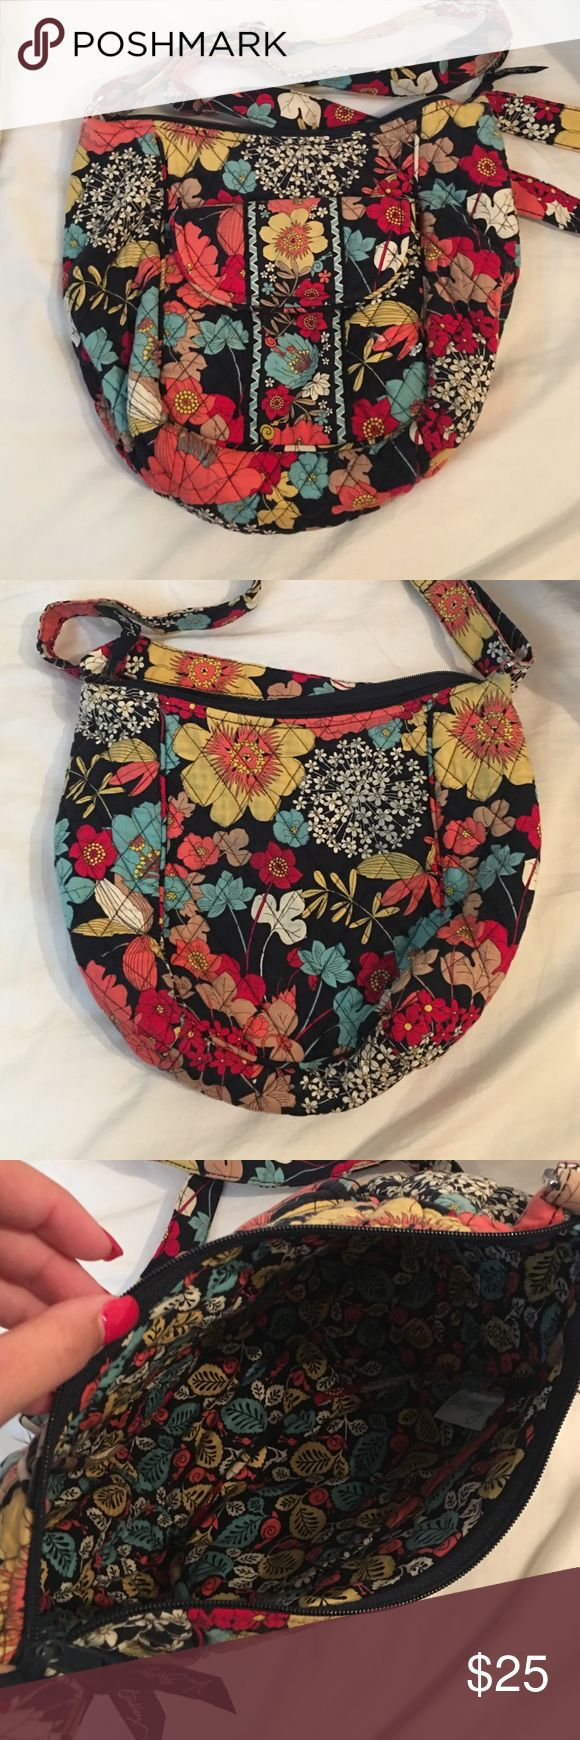 Vera Bradley Crossbody Vera Bradley Crossbody great condition and pattern Vera Bradley Bags Crossbody Bags